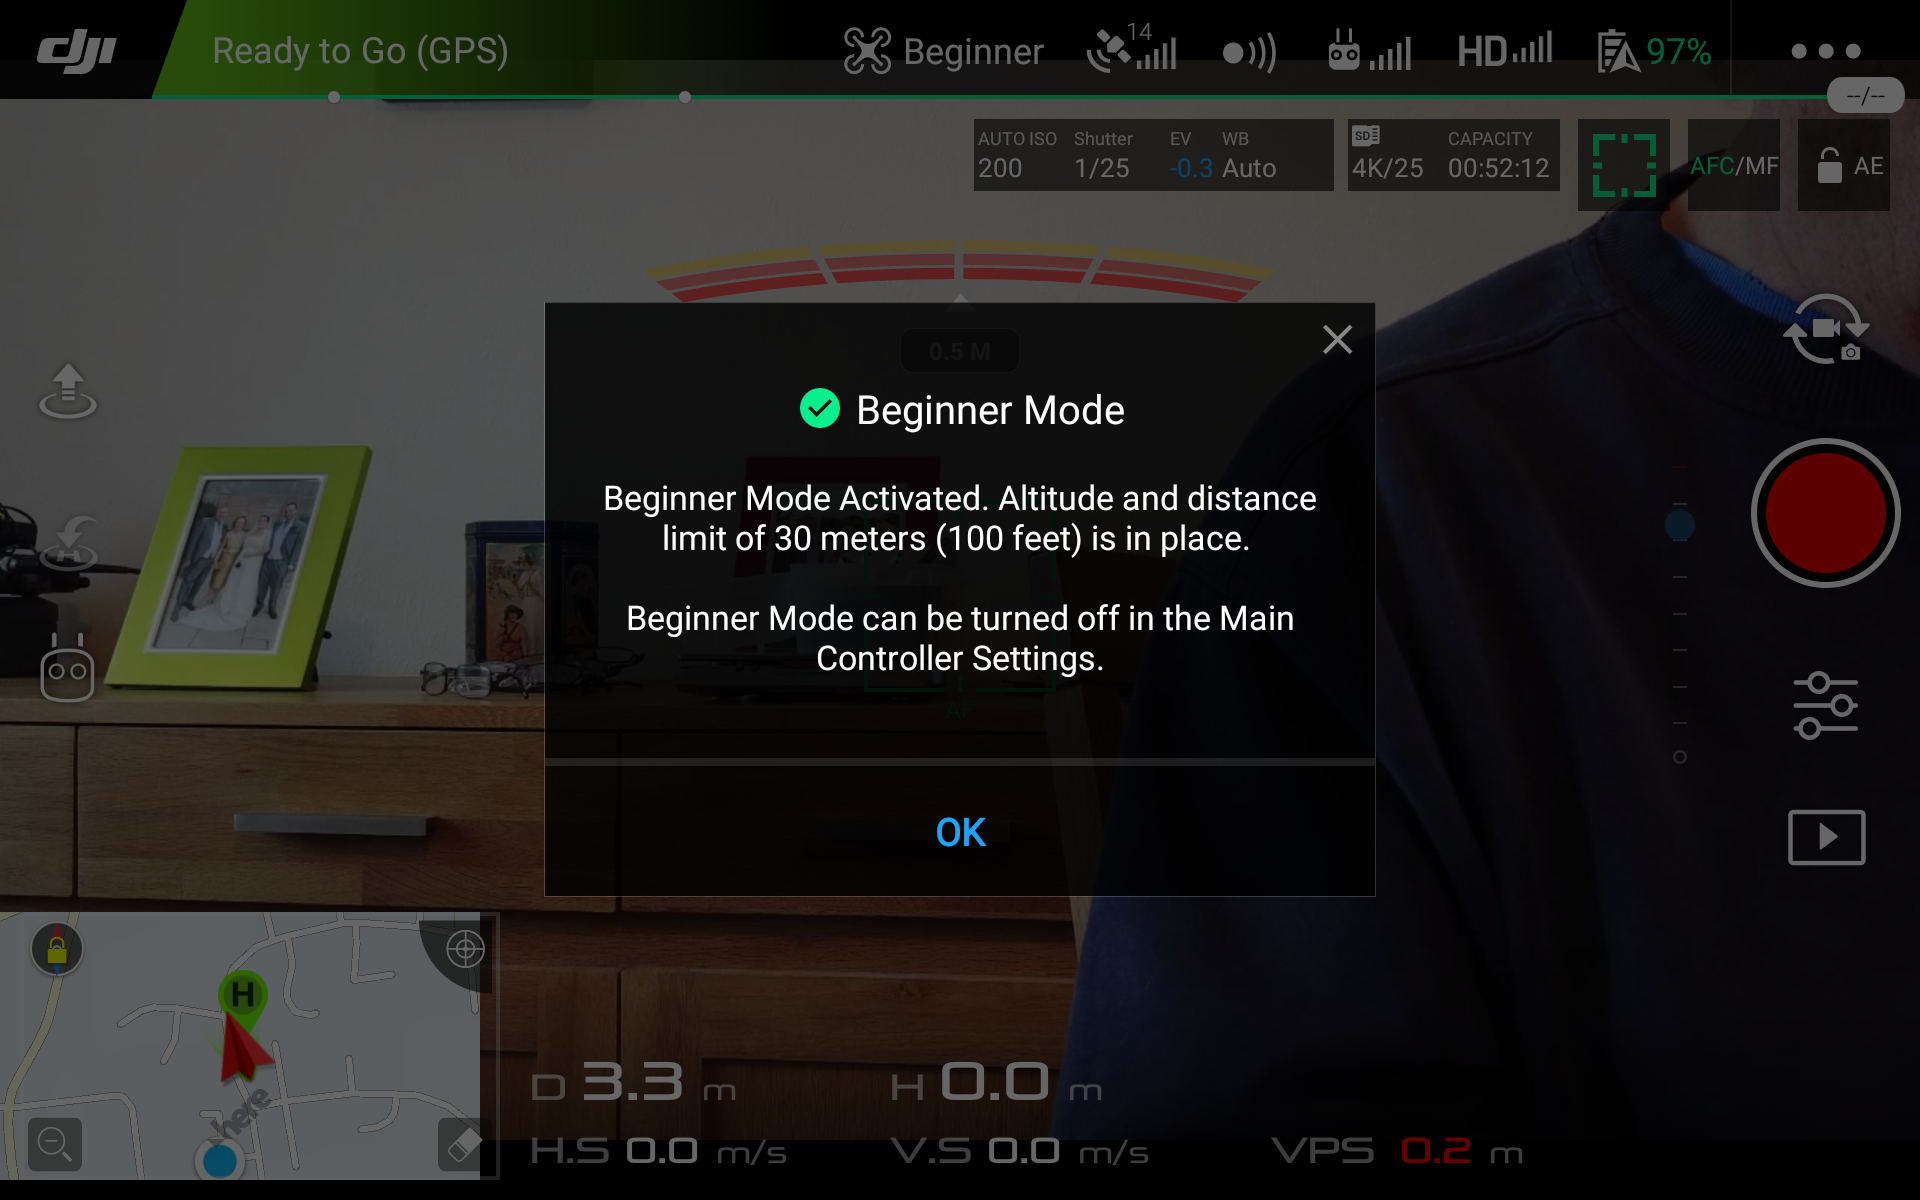 What does beginner mode do besides restrict altitude and